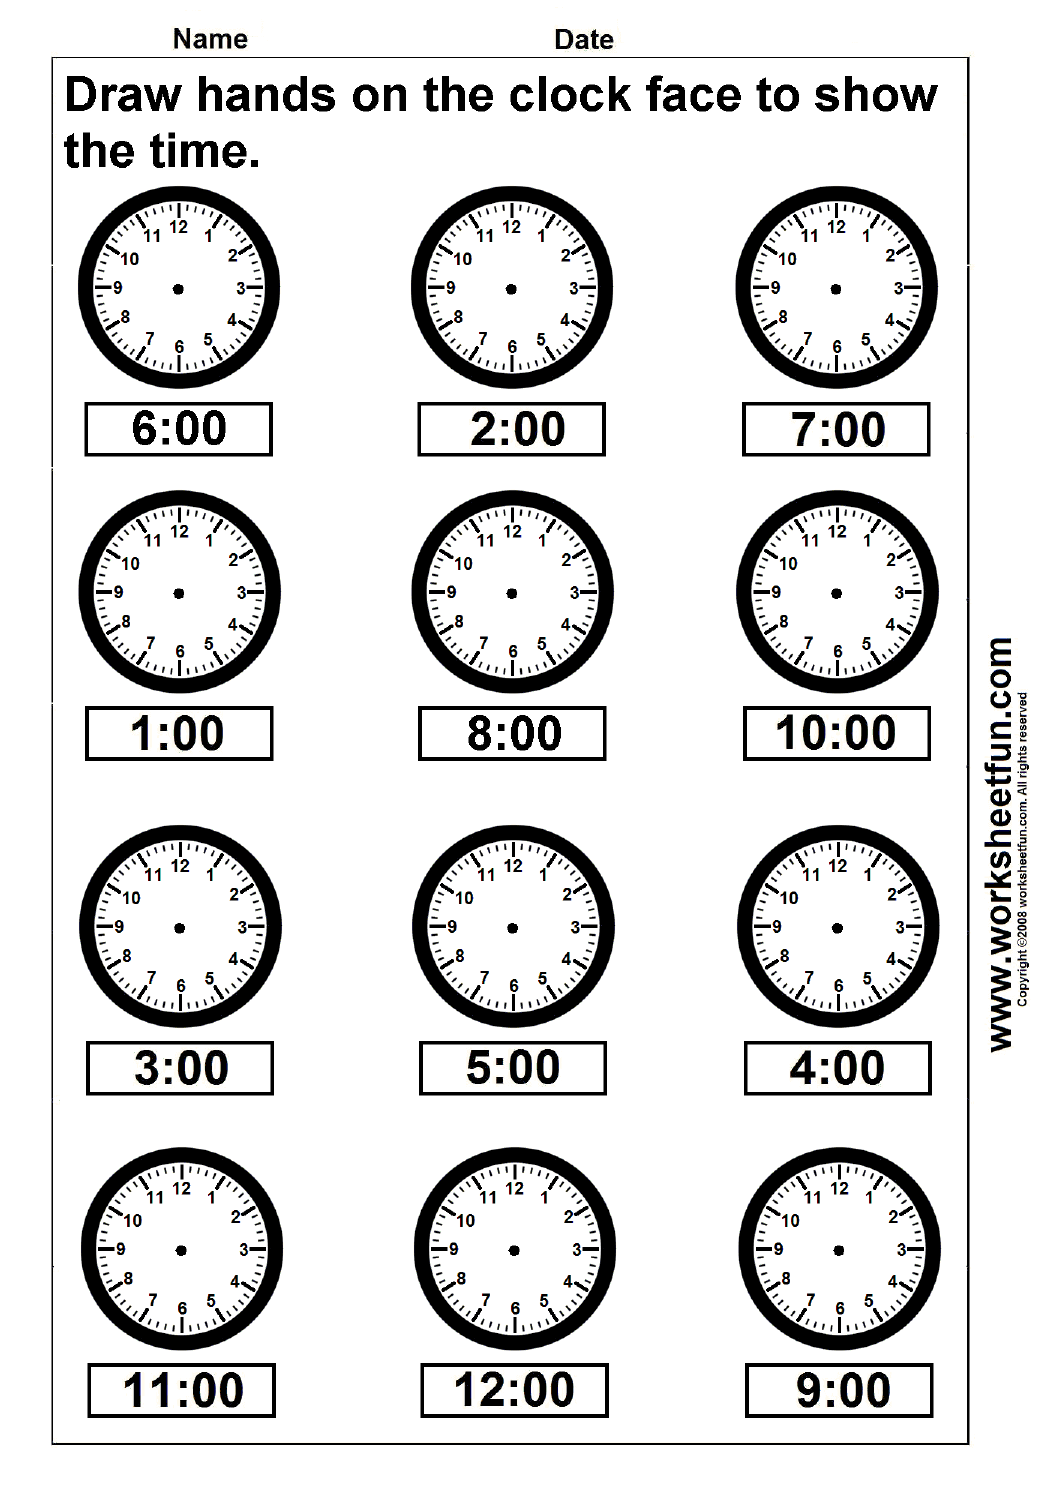 Draw hands on the clock face to show the time 4